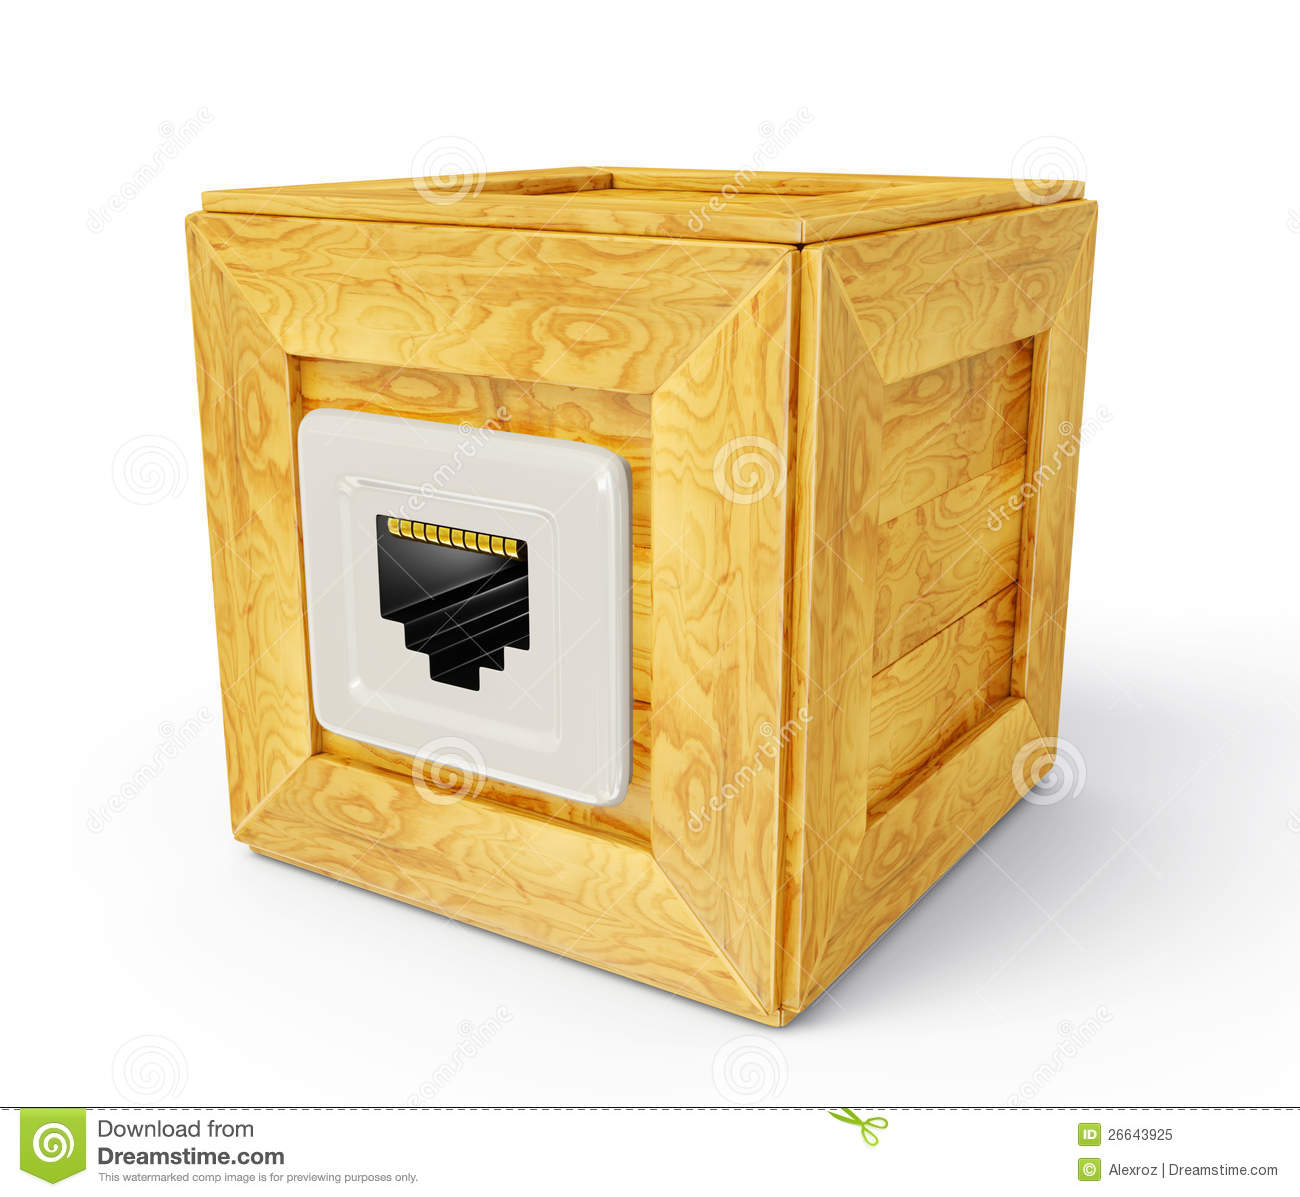 3d Objects Royalty Free Stock Photo Image 26643925